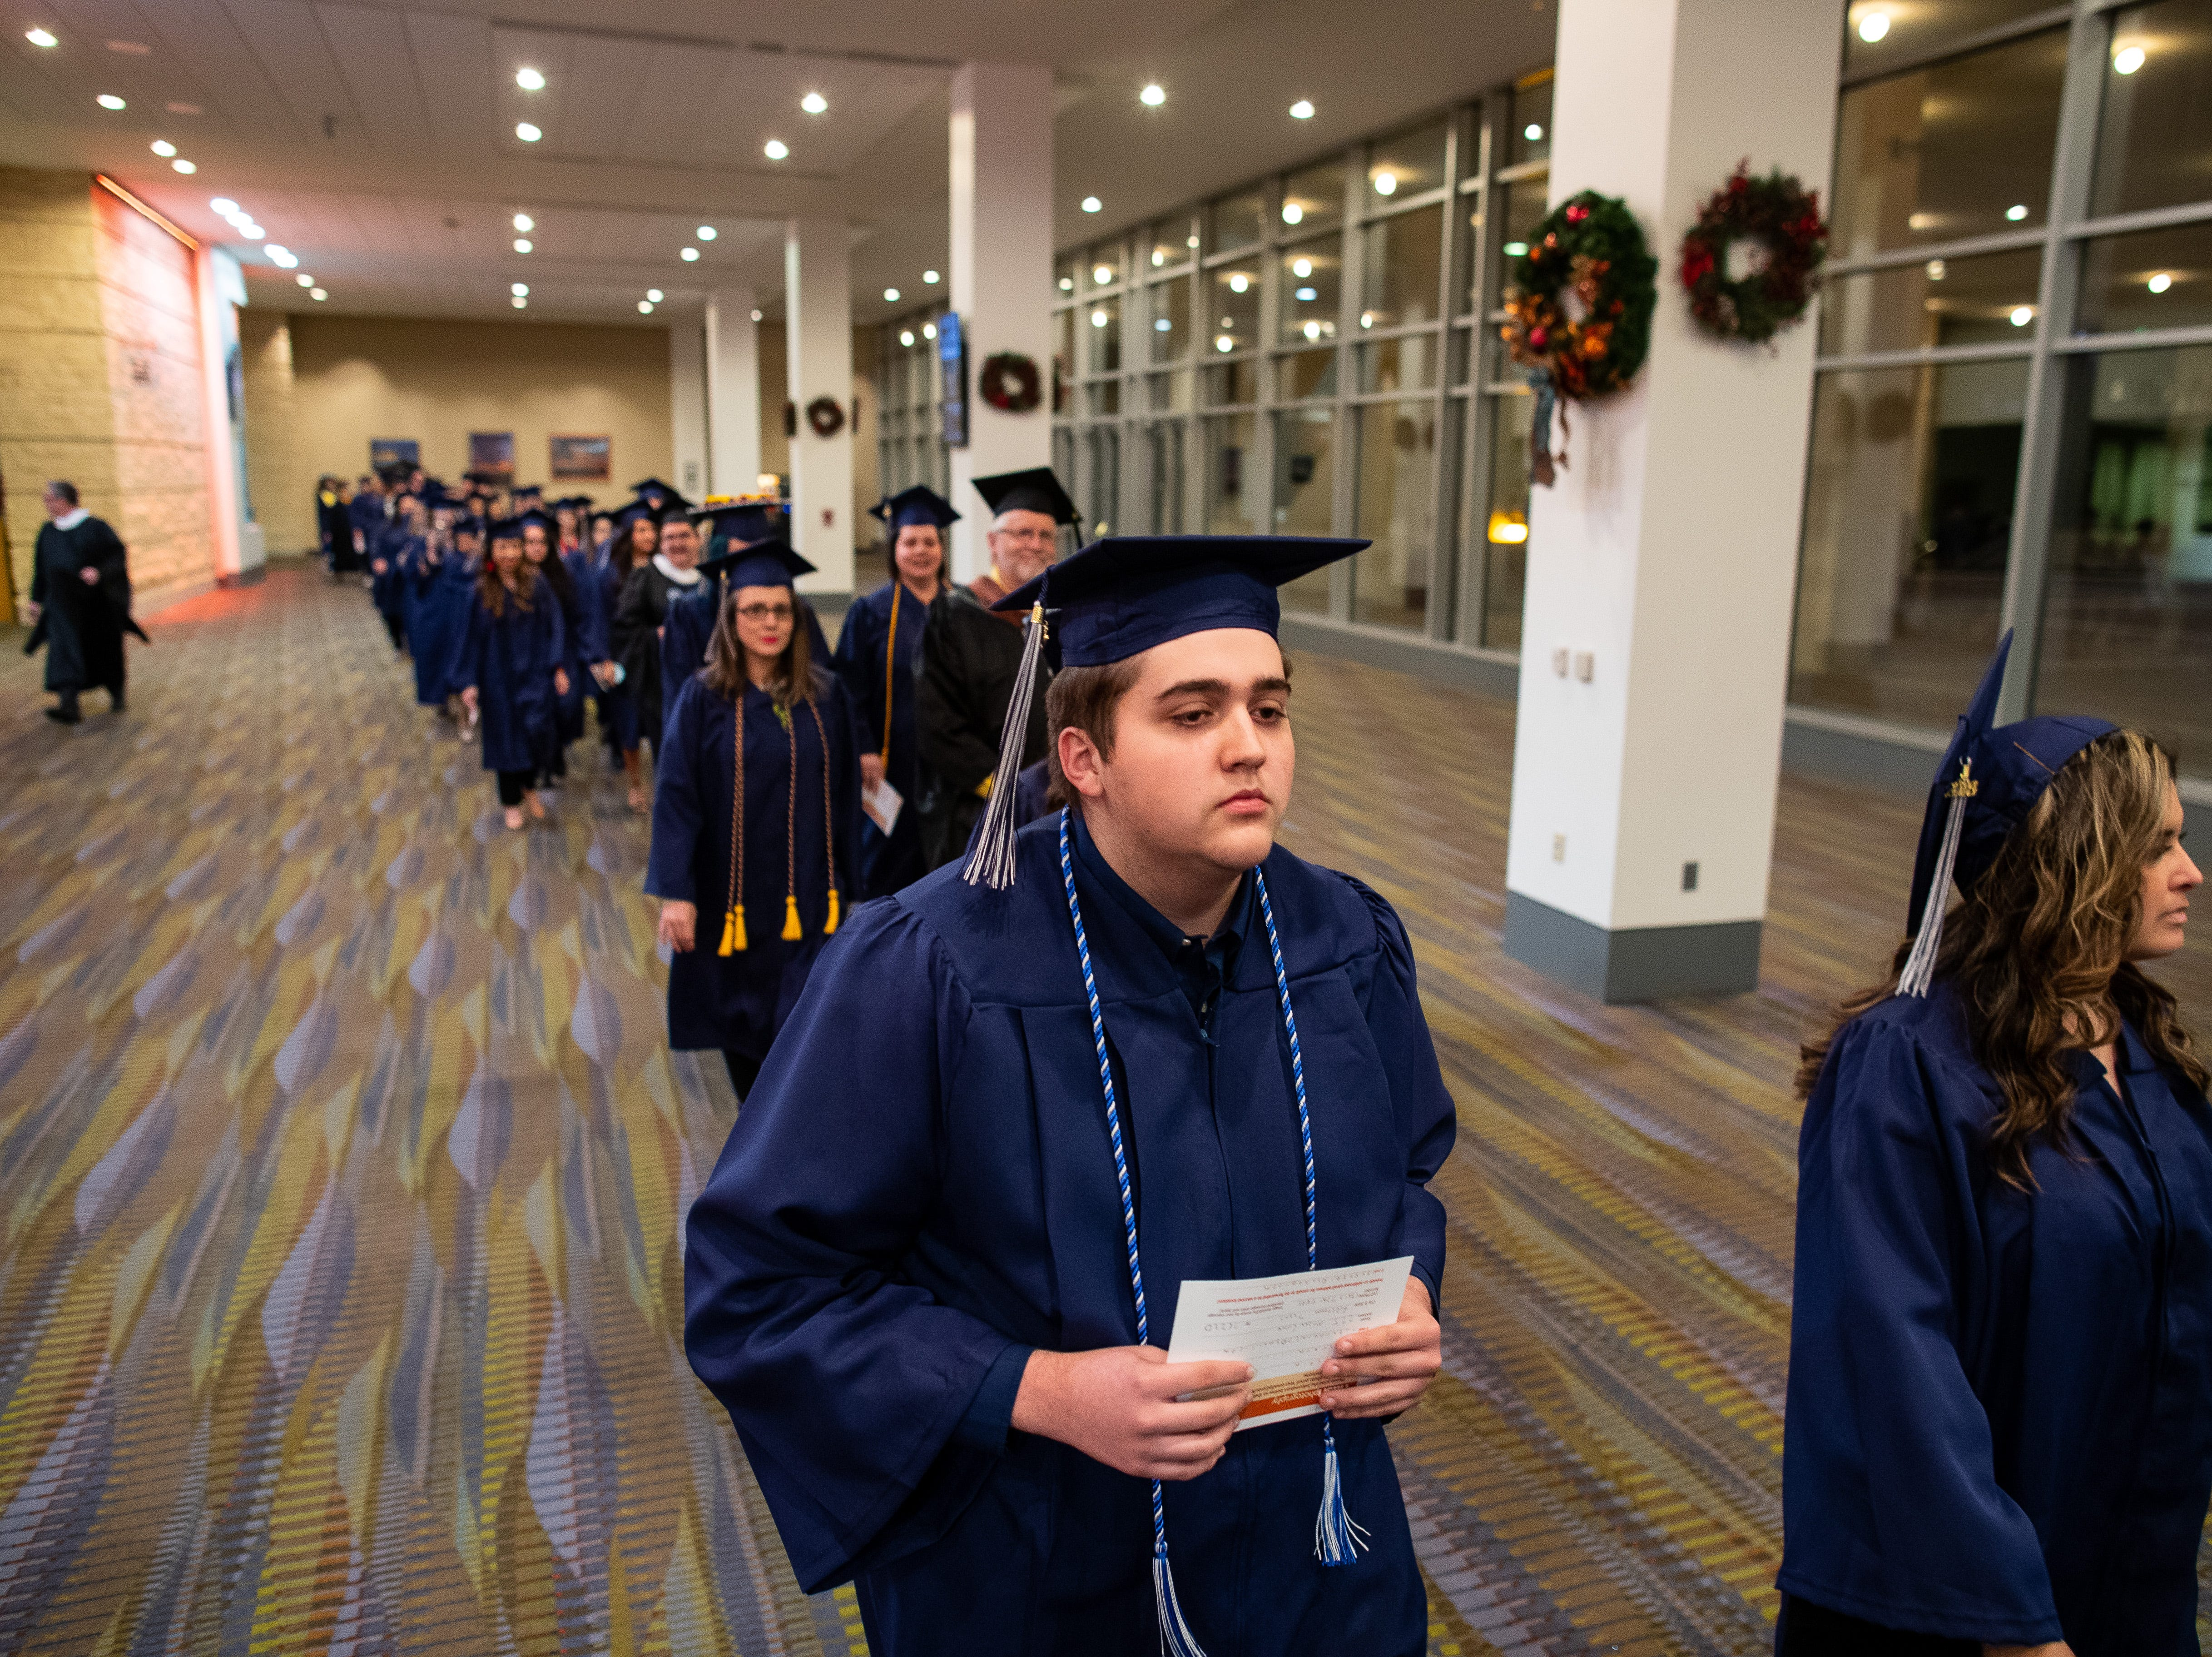 Robstown High School 's AJ Barrera waits for the start of Del Mar's fall commencement ceremony on Thursday, Dec. 13, 2018. AJ Barrera is the first senior in Robstown ISD's history to get an associate's degree before officially getting his high school certificate